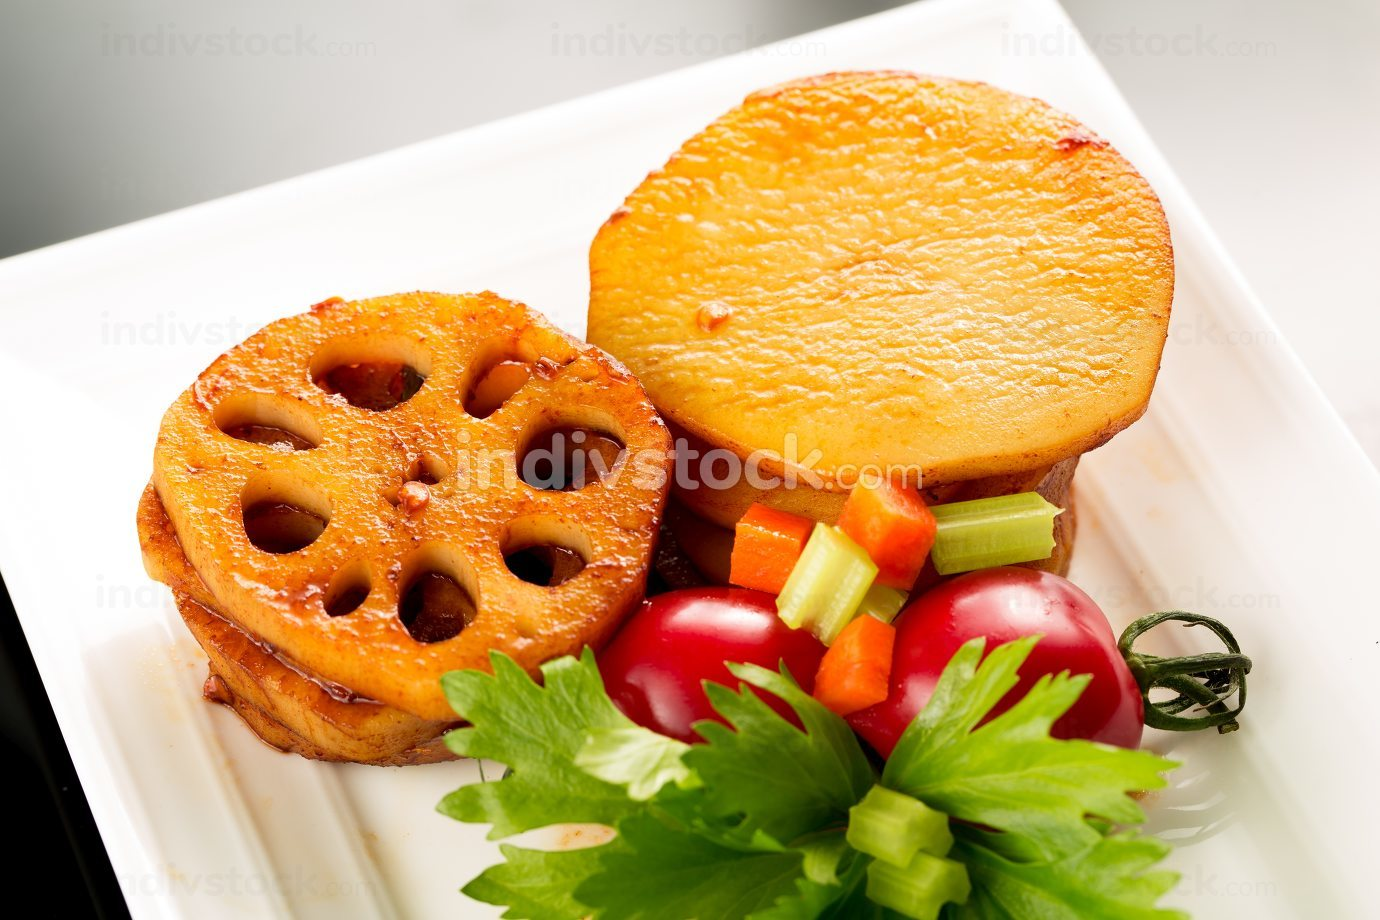 Braised lotus root and potatos, Chinese cuisine.